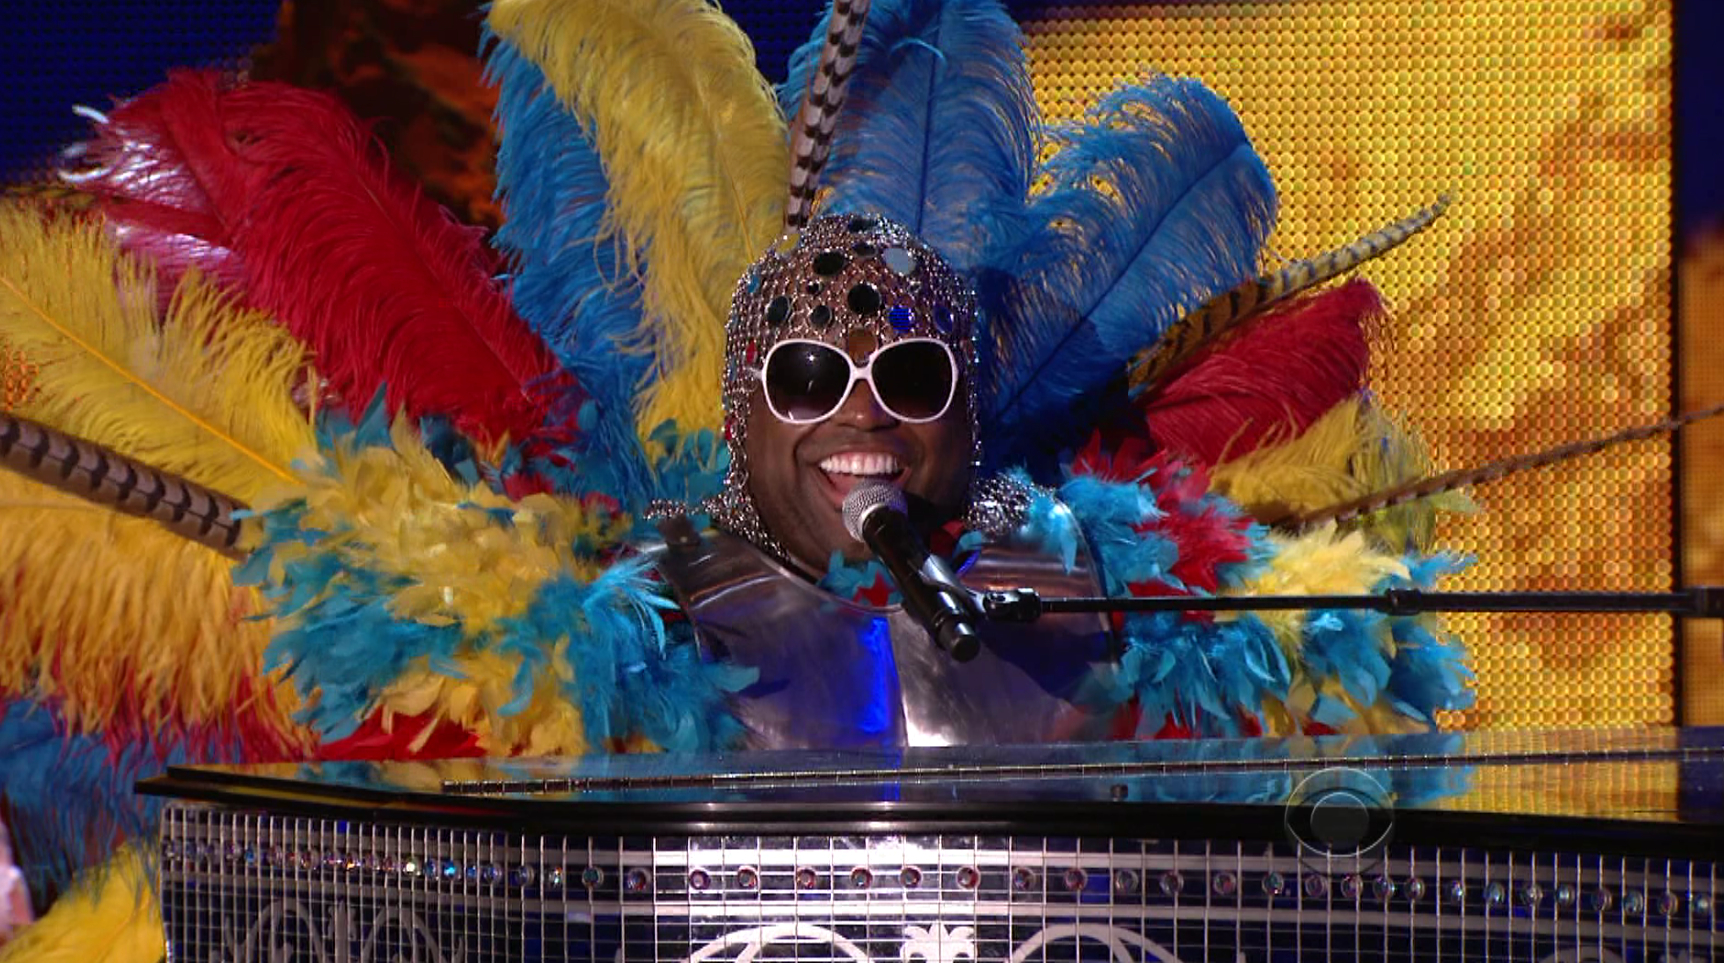 Cee-Lo Green performing at the 2011 Grammys